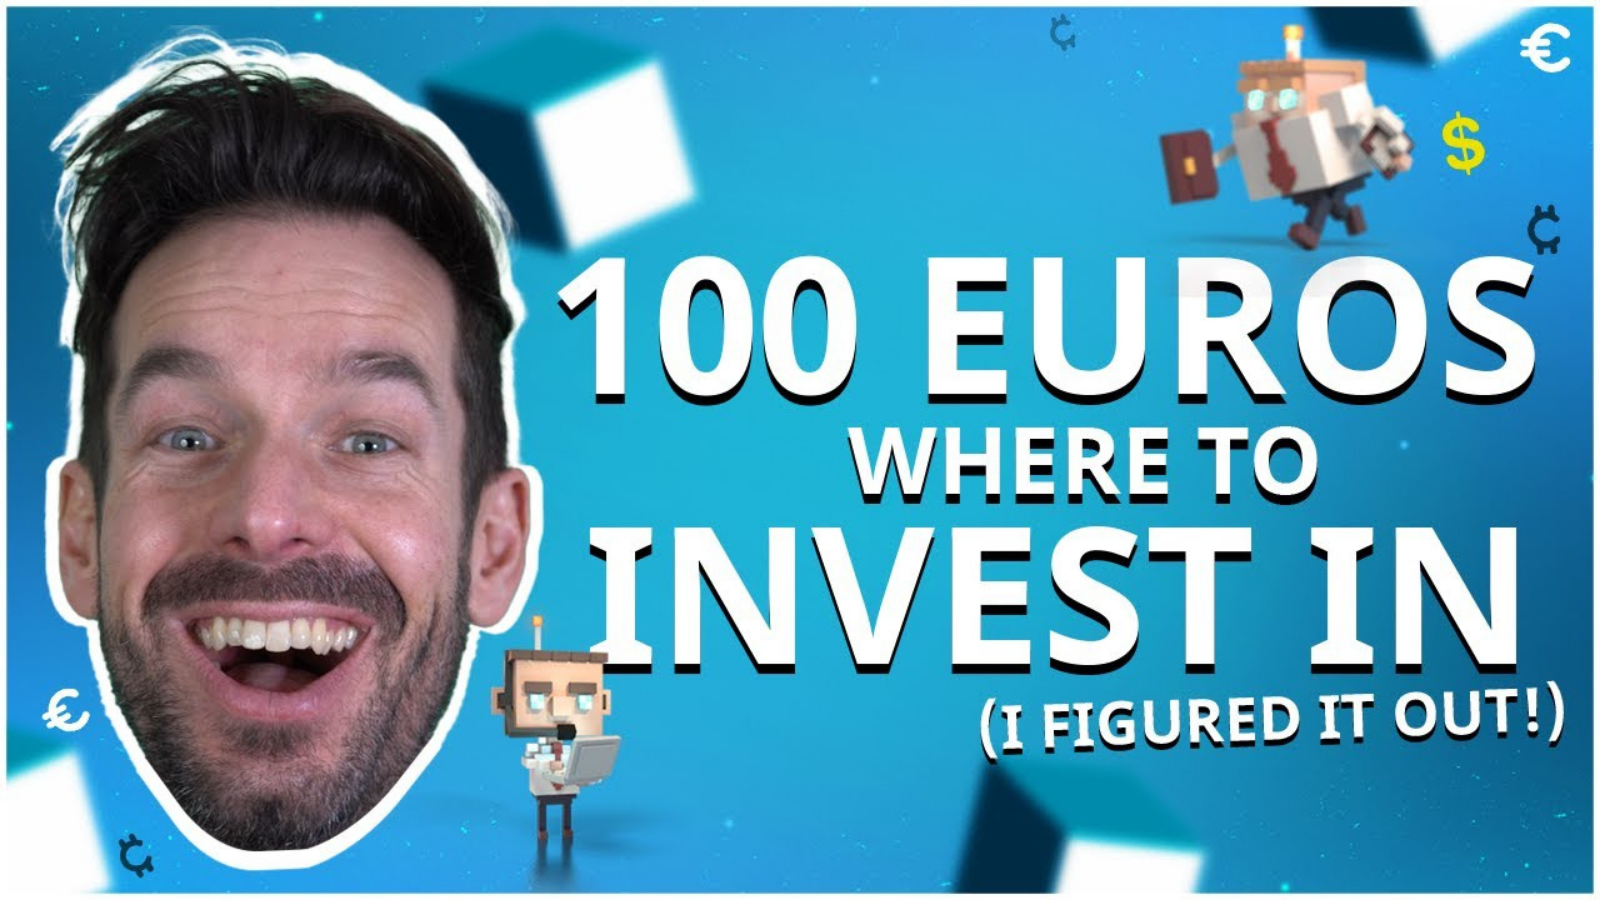 BOTS Blog: Where should I invest my first 100 euros?